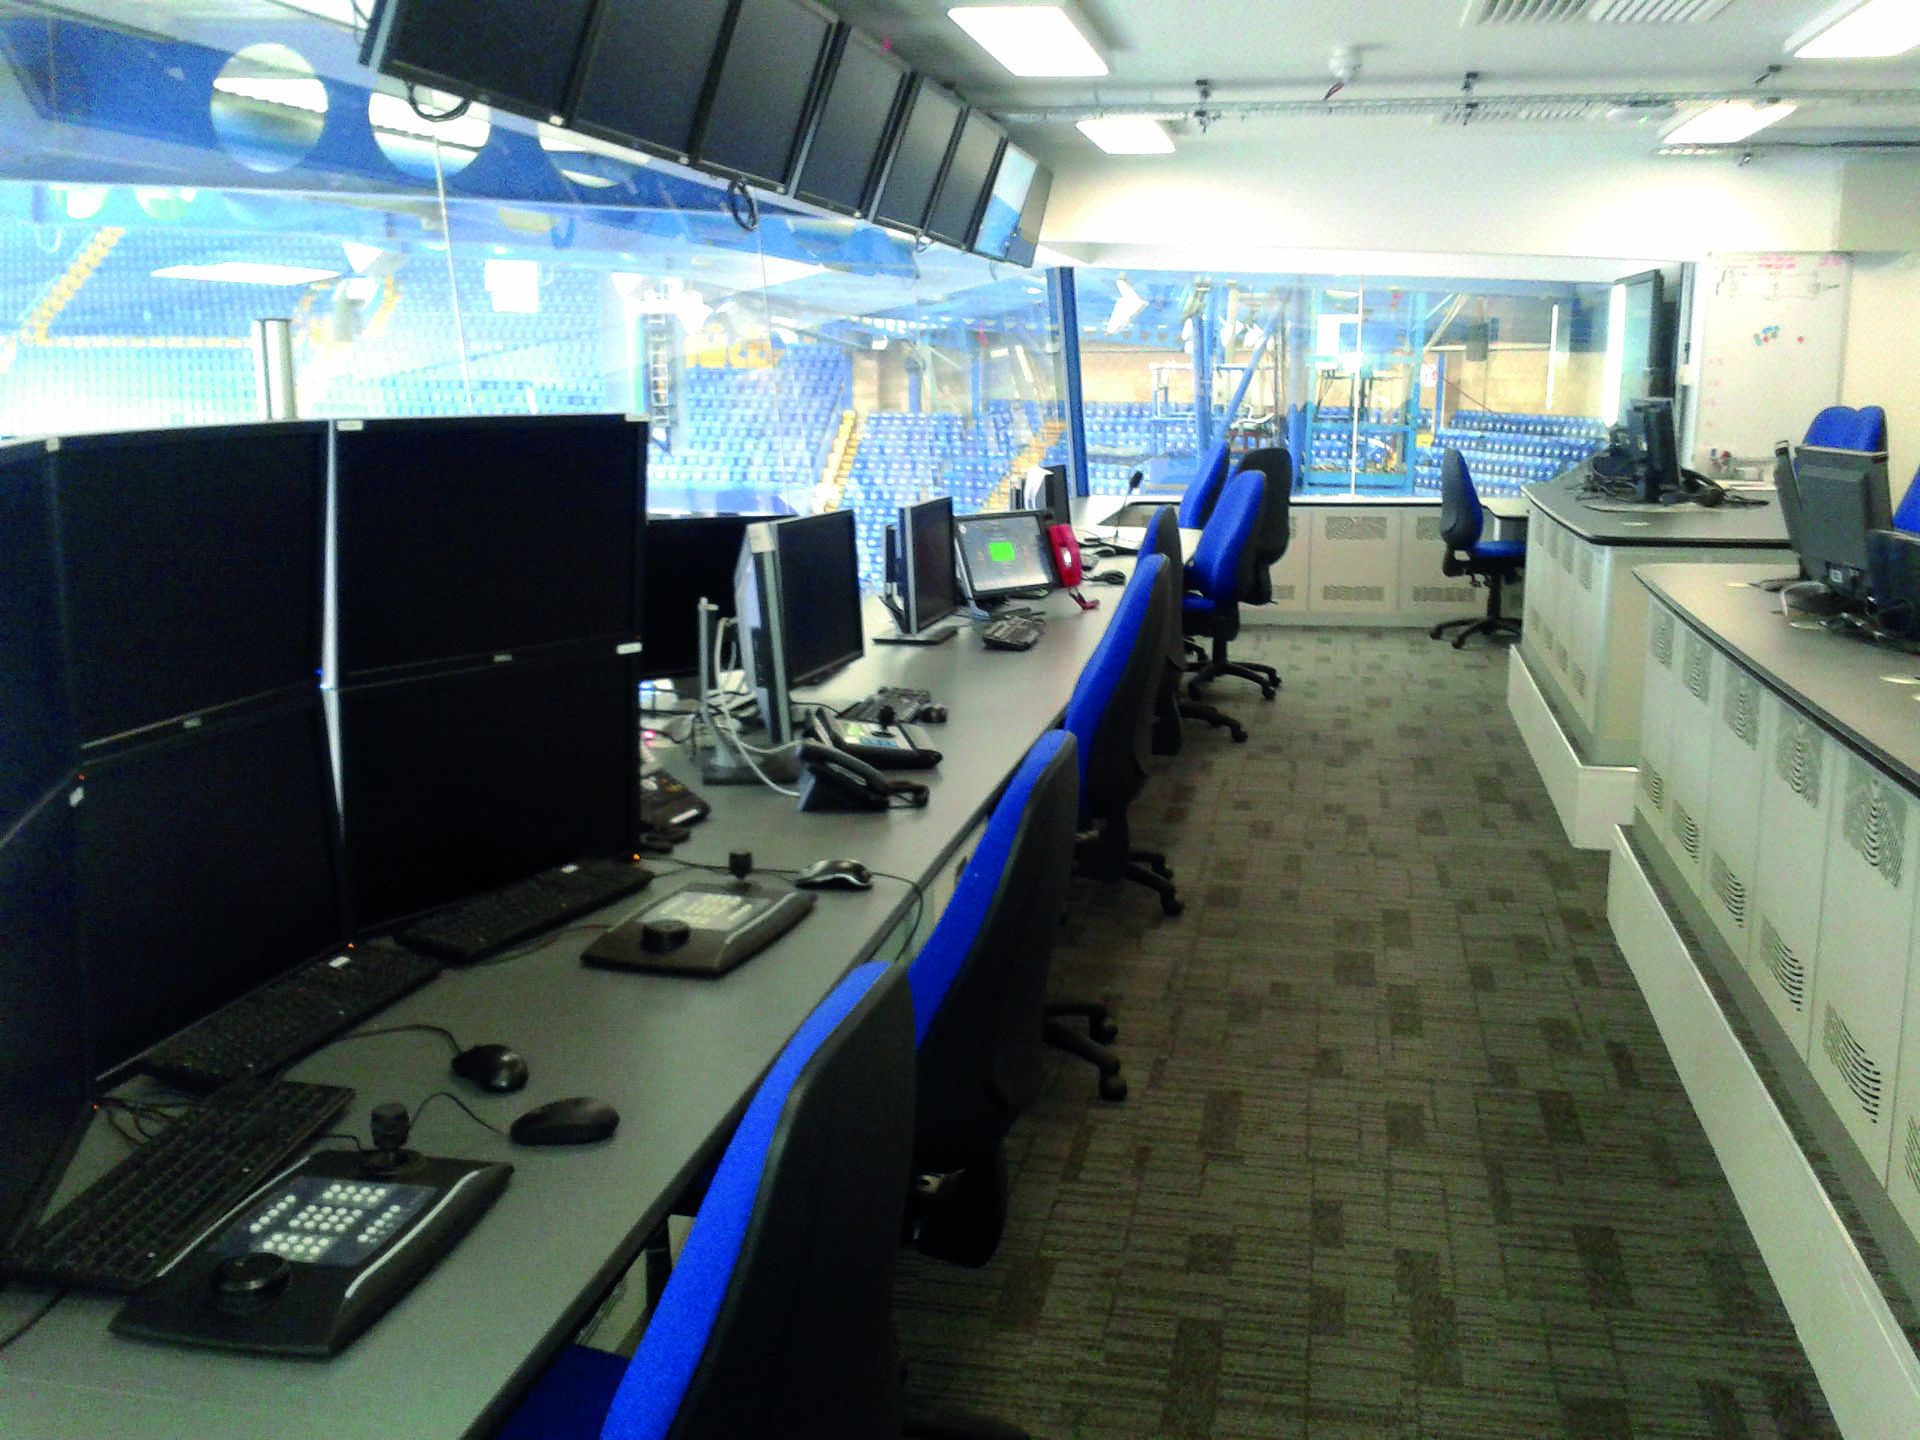 control room furniture sporting arena